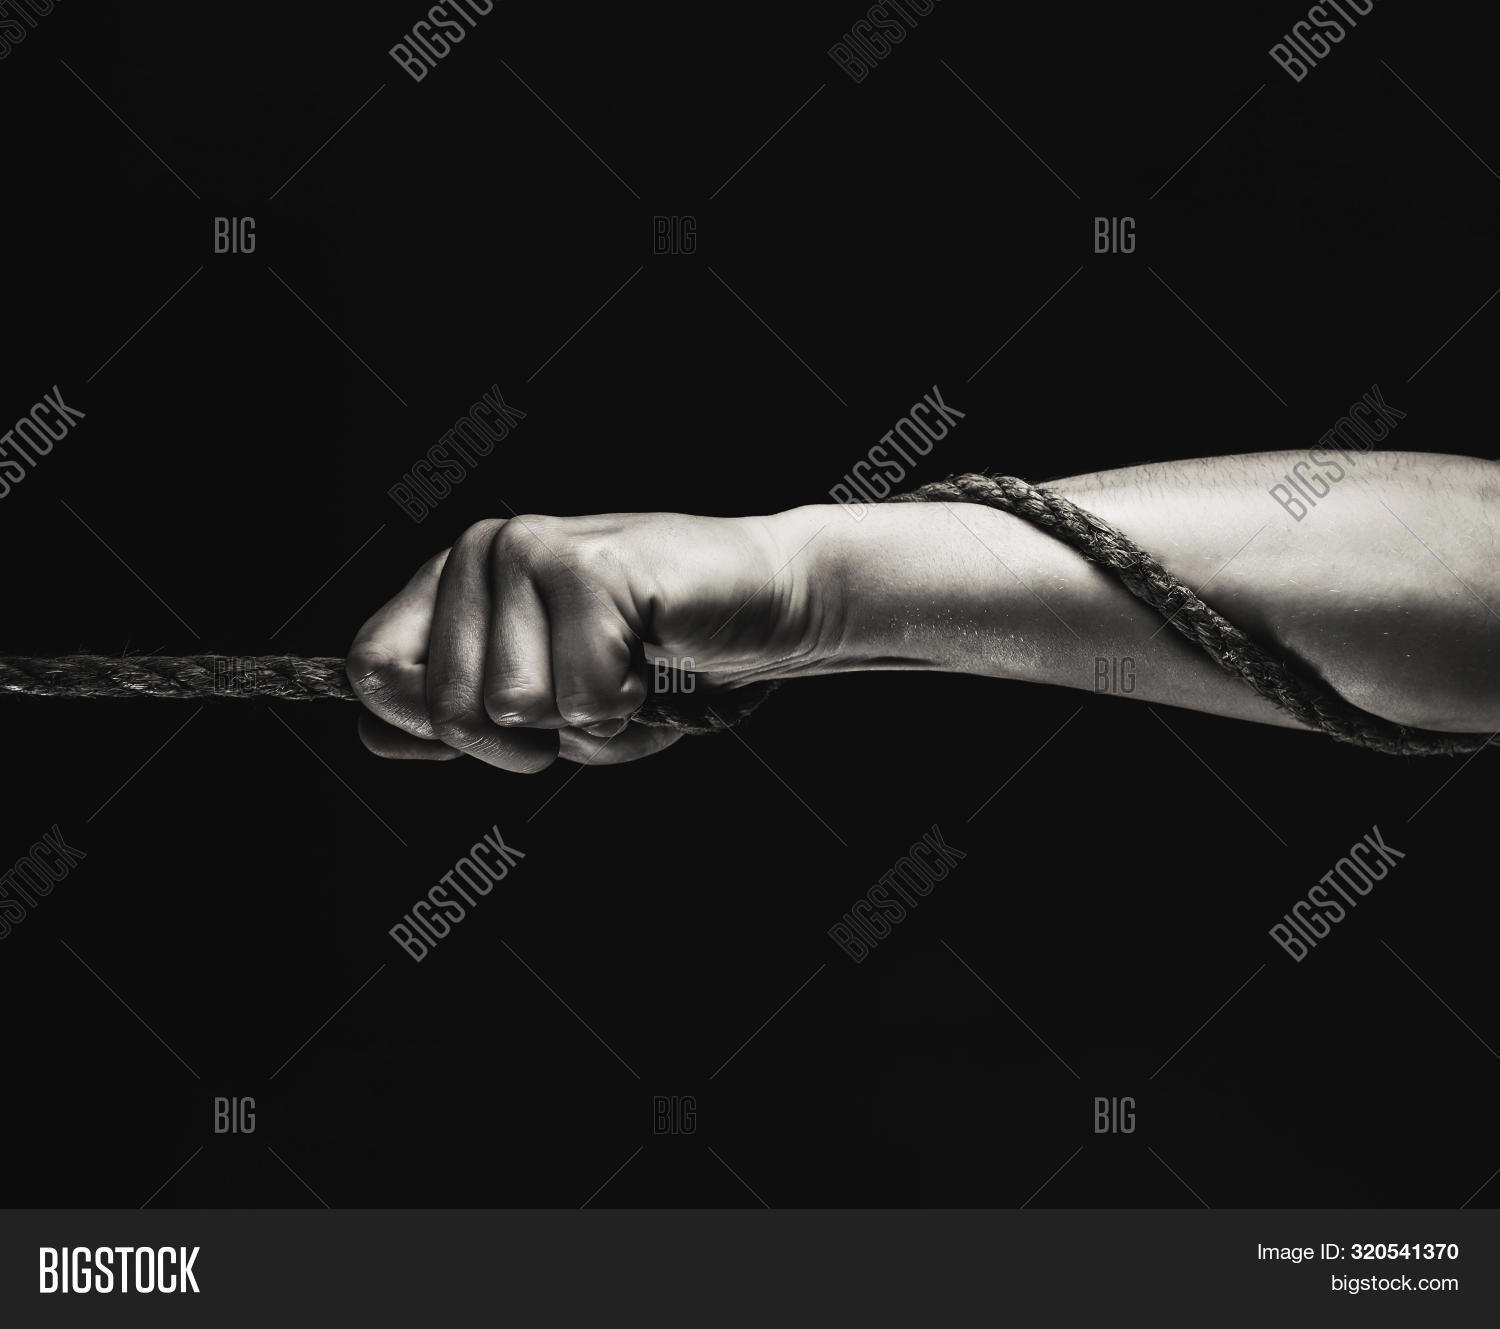 achievement,arm,background,balance,challenge,climb,climber,climbing,competition,concept,conflict,connection,cooperation,cord,determination,effort,endurance,grab,gripping,hand,holding,human,motivation,partnership,people,persistence,power,resistance,rivalry,rope,safety,sport,strength,strong,team,teamwork,tug